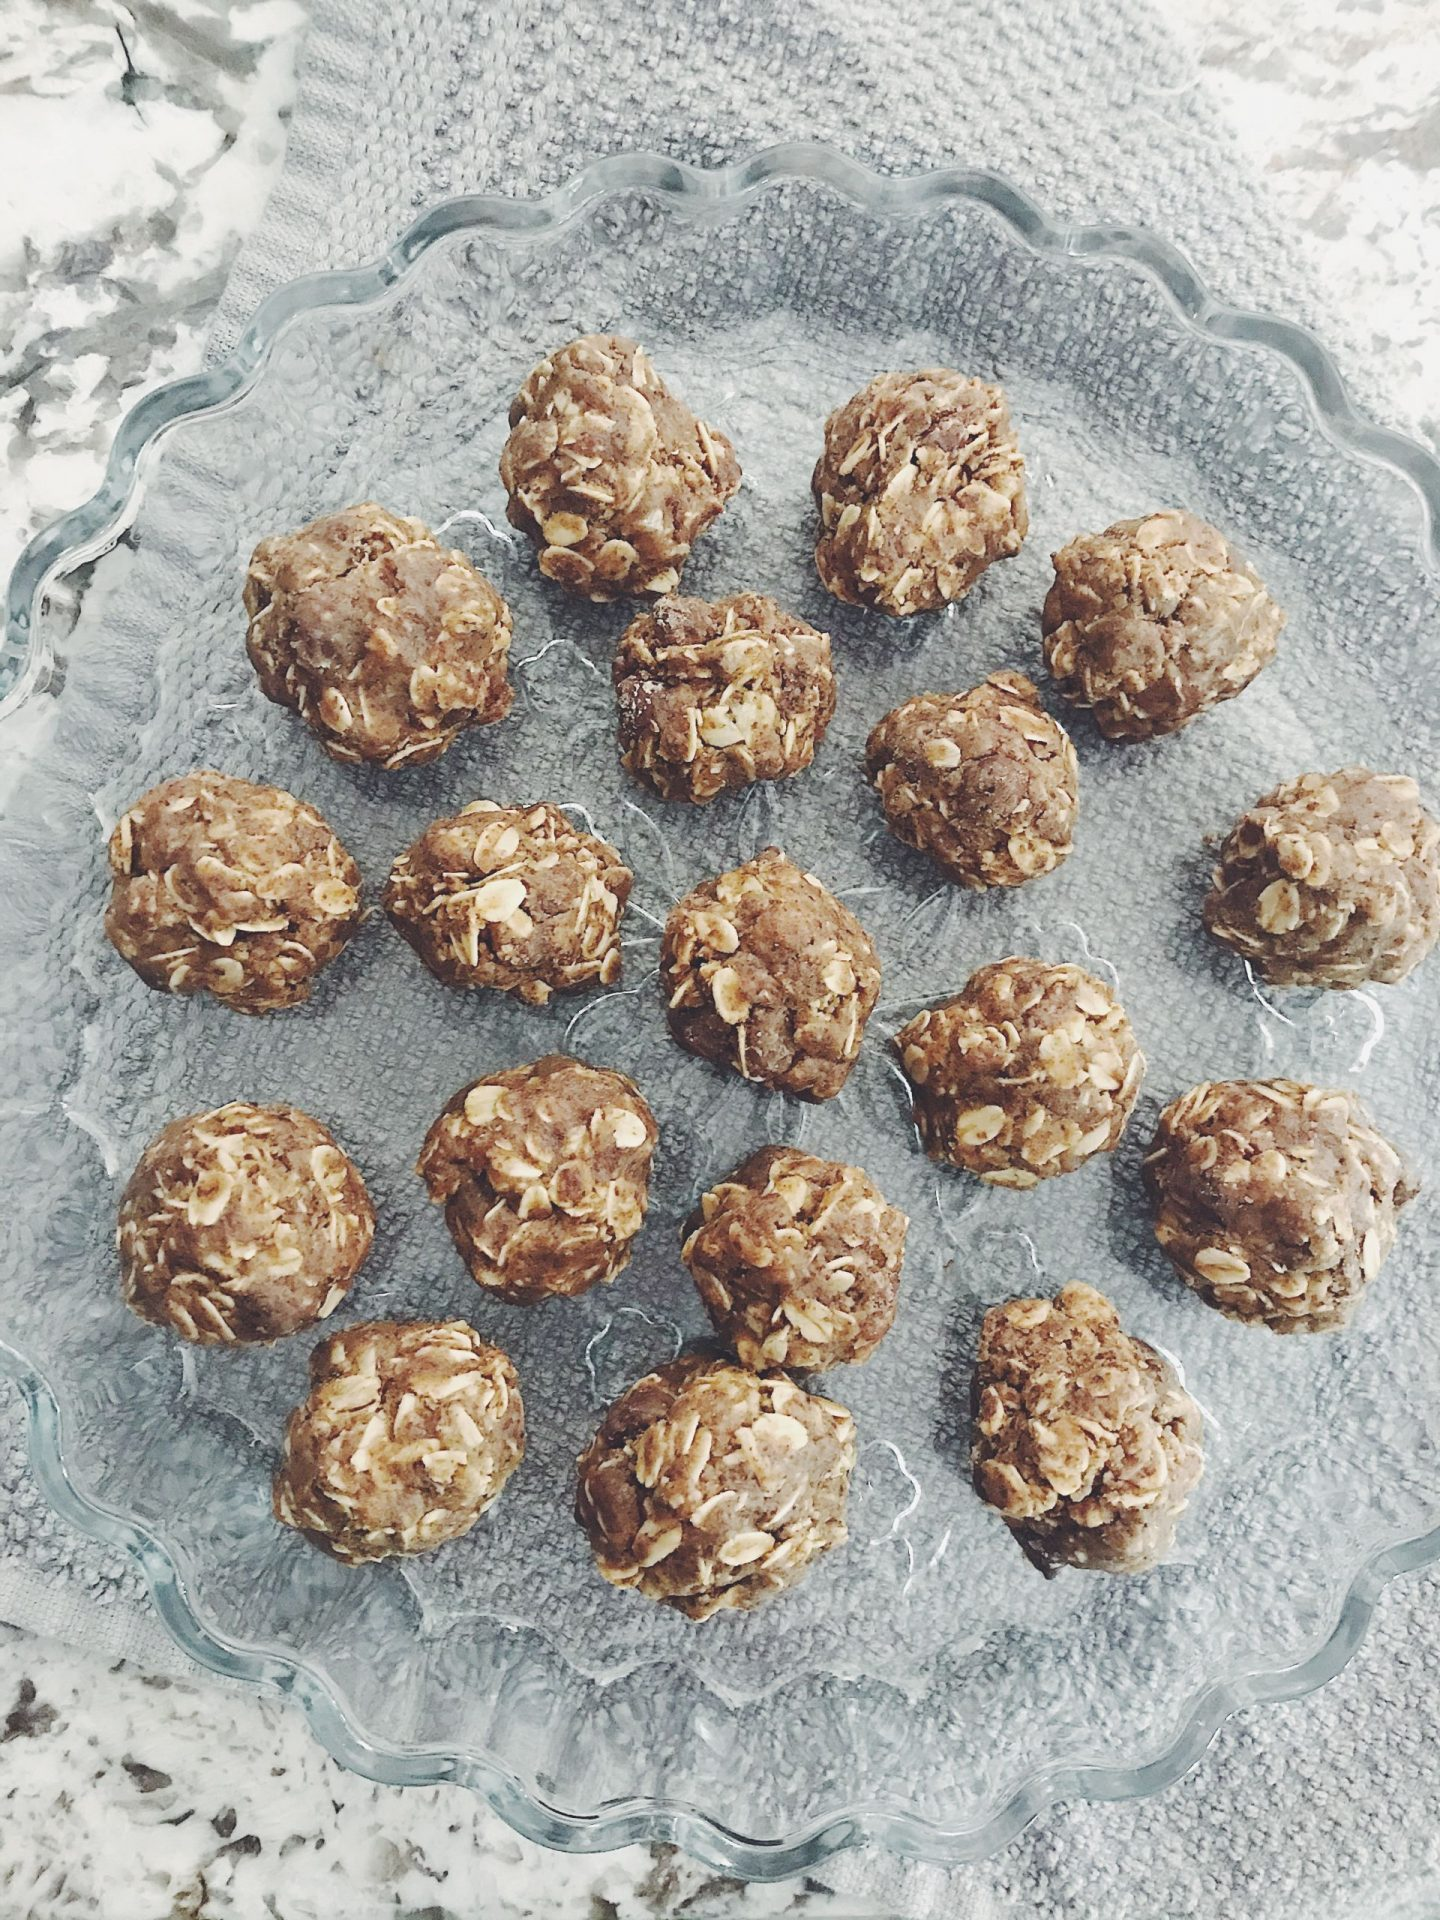 How to Make Peanut Butter Oat Balls